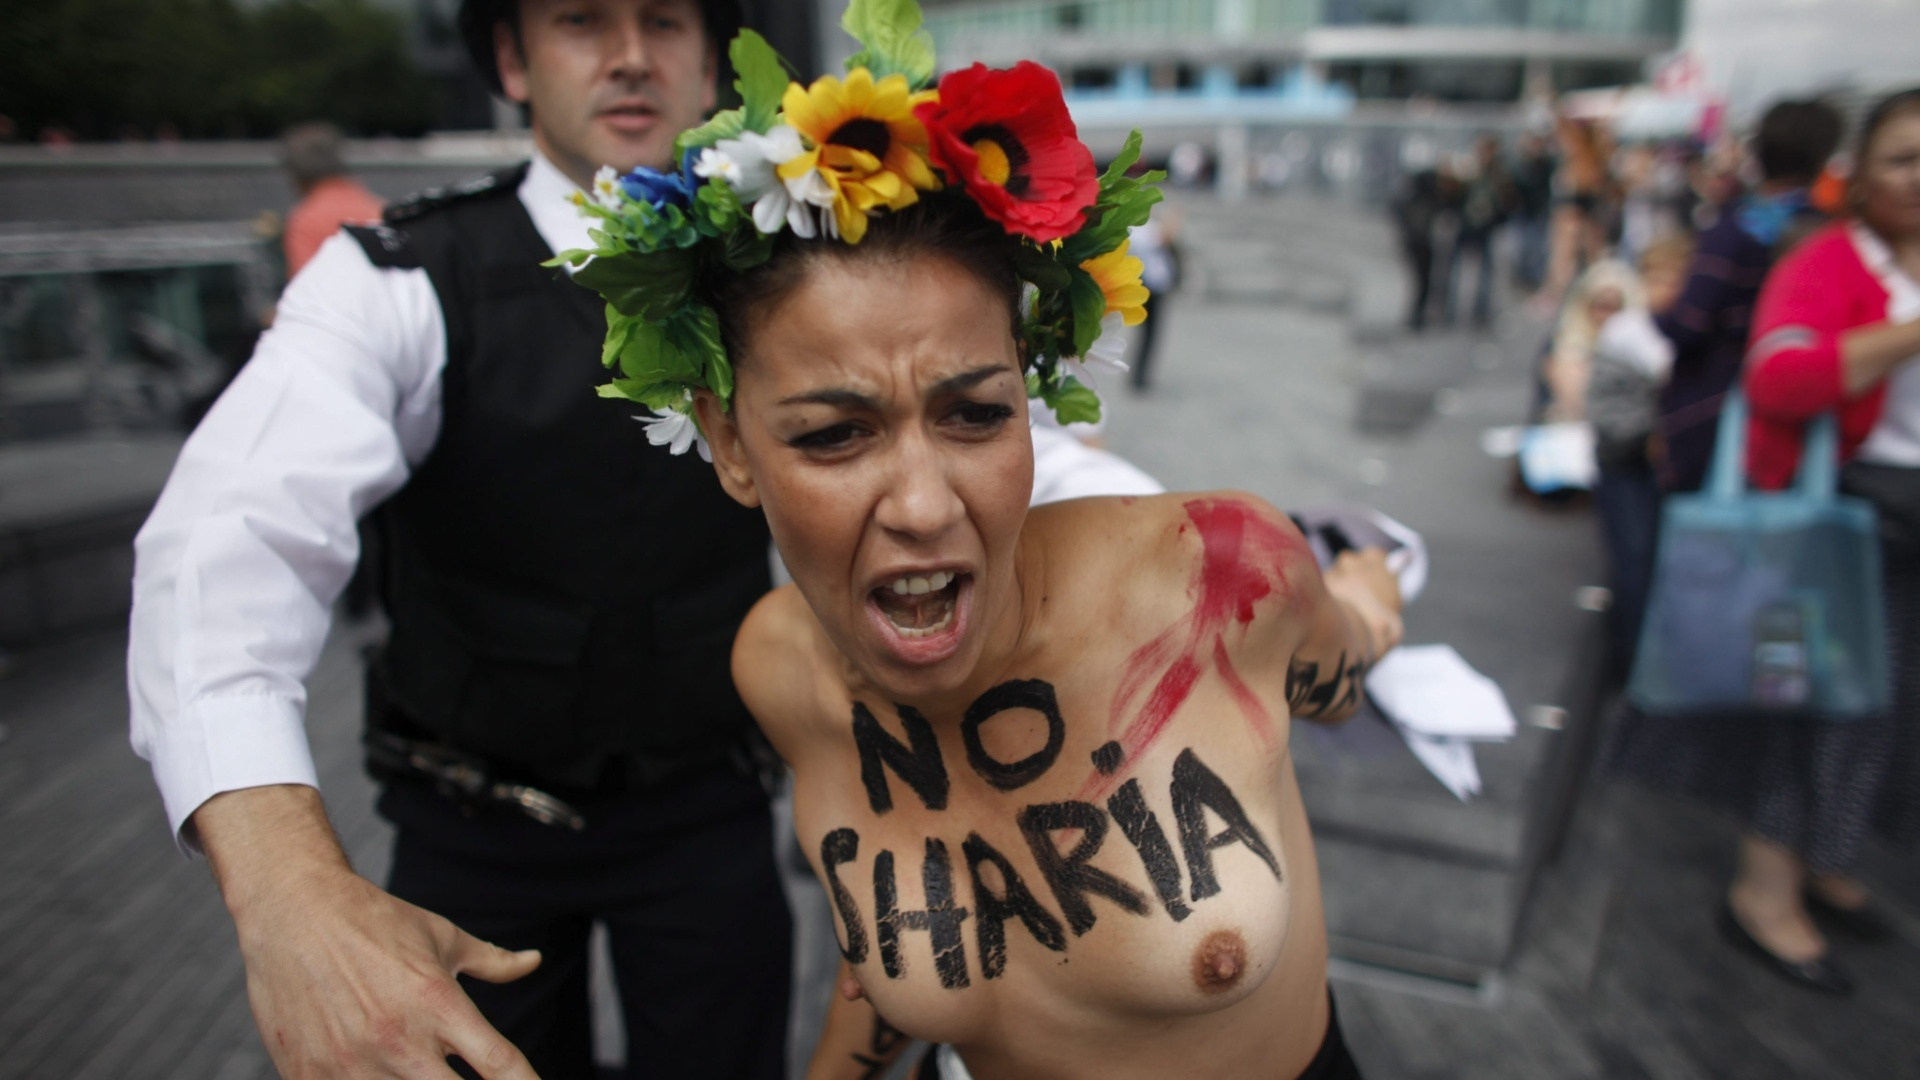 2.ago.2012 - Policiais britnicos prendem ativista do grupo Femen nesta quinta-feira (2) durante protesto em Londres, no Reino Unido, contra a aprovao dos regimes islmicos pelo comit olmpico